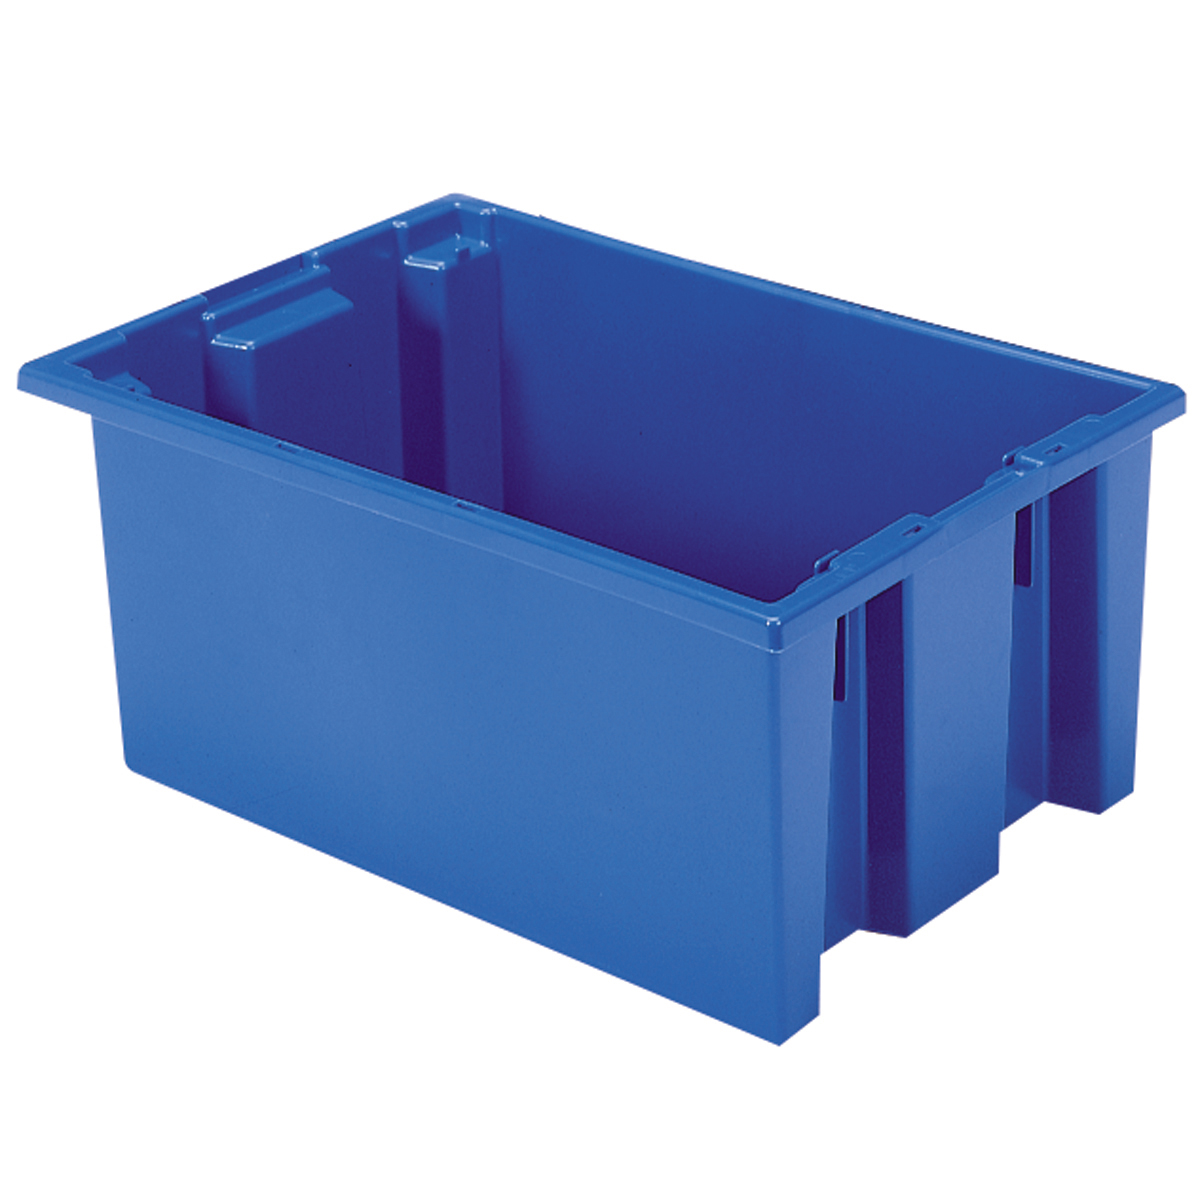 Nest & Stack Tote 19-1/2 x 13-1/2 x 8, Blue (35200BLUE).  This item sold in carton quantities of 6.